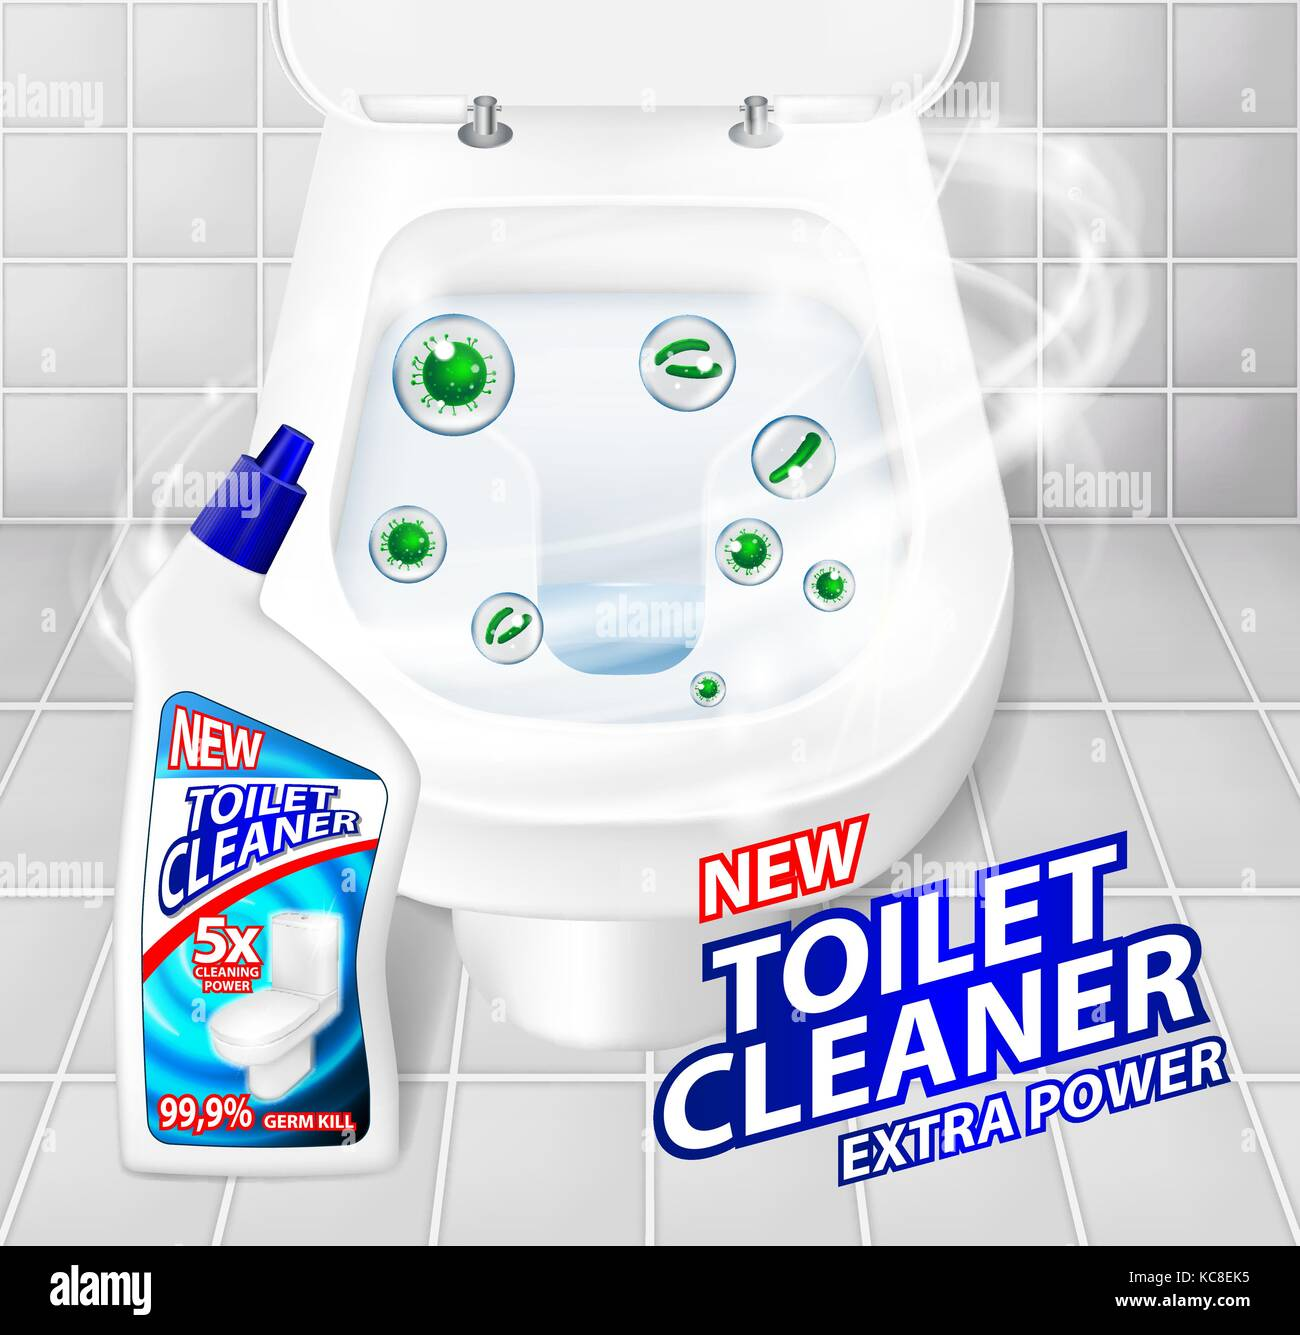 Toilet Cleaner Stock Photos Amp Toilet Cleaner Stock Images